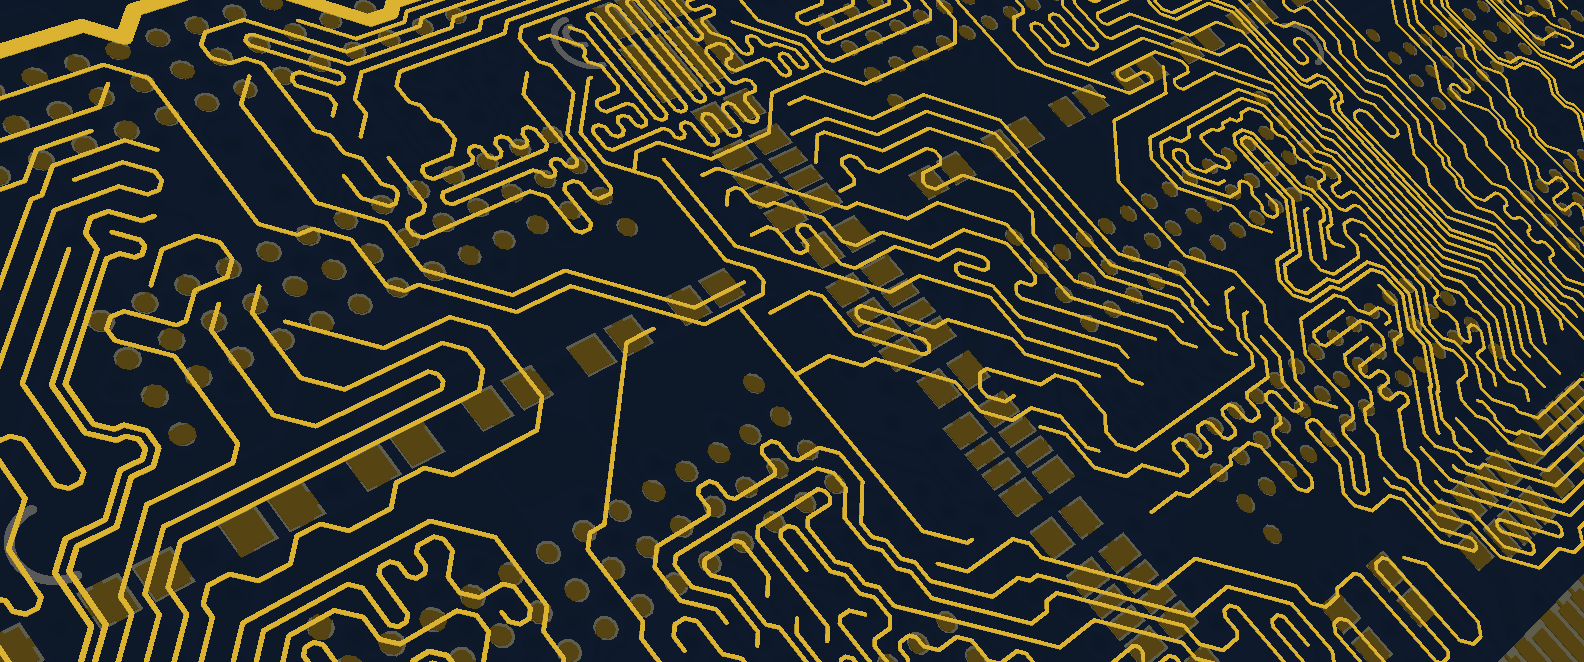 Online Advanced PCB Layout Course, by Motherboard Designer.